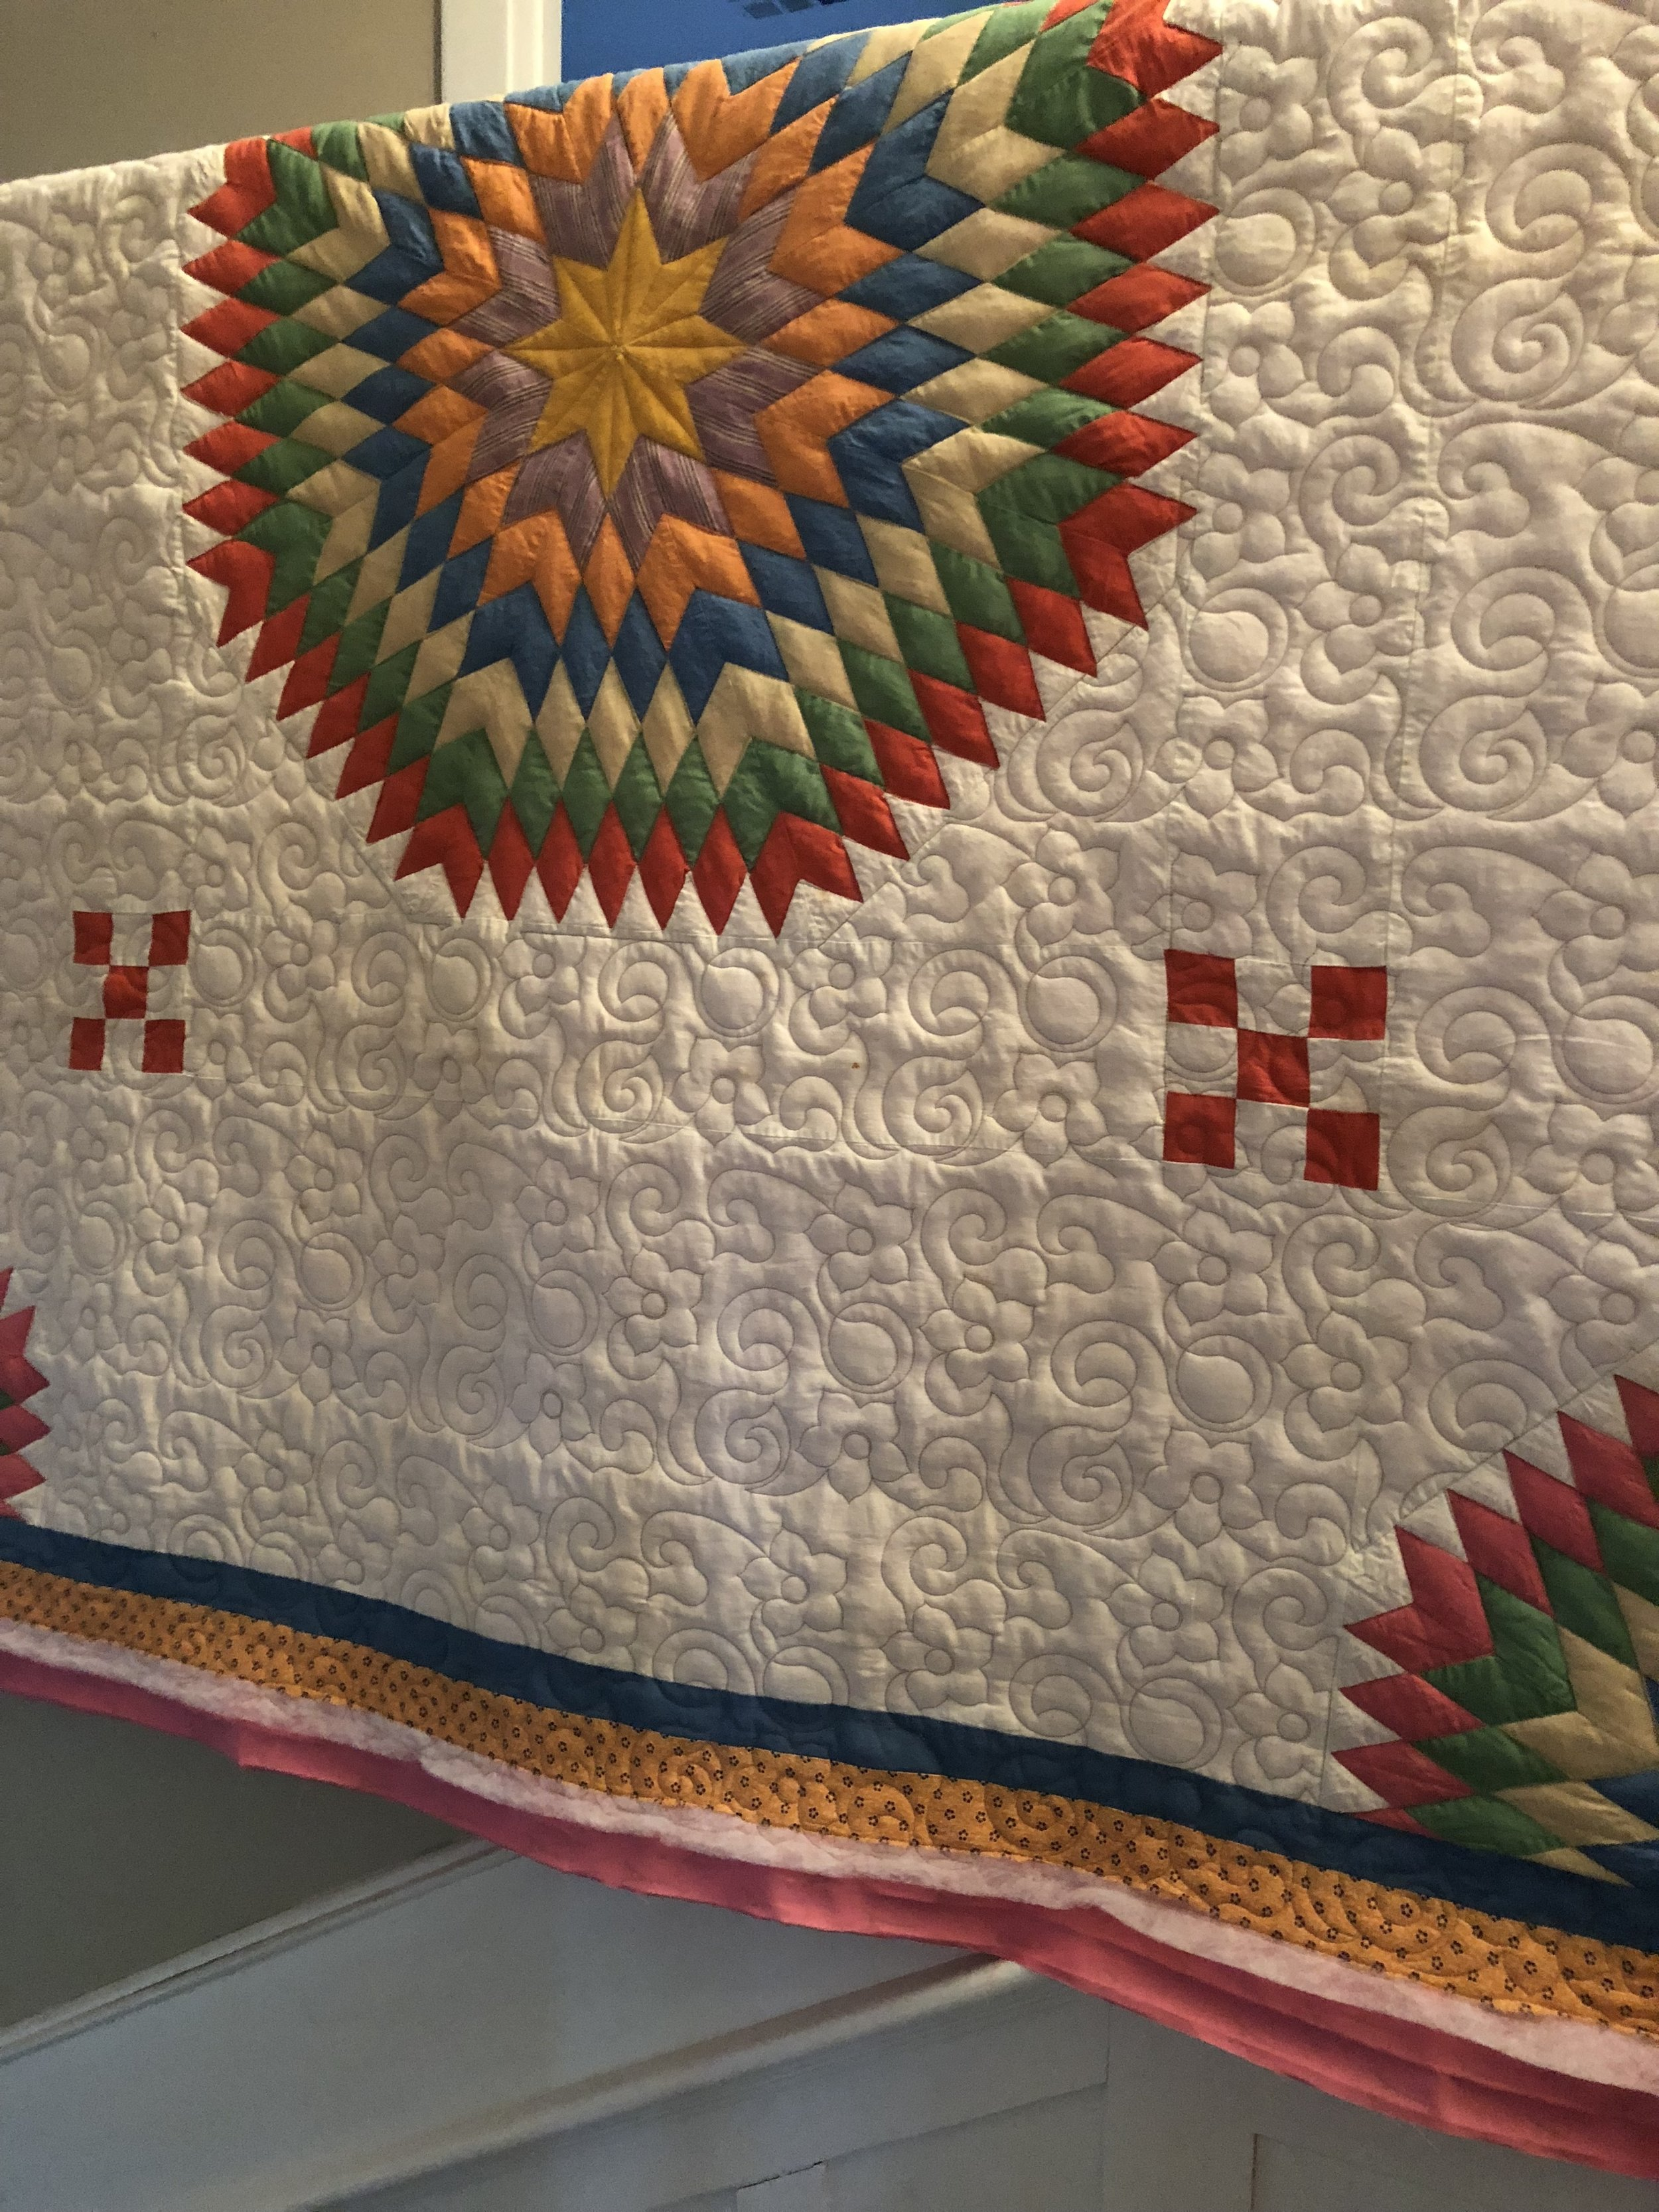 Gussie's Quilt: Ruler work and Pantos.